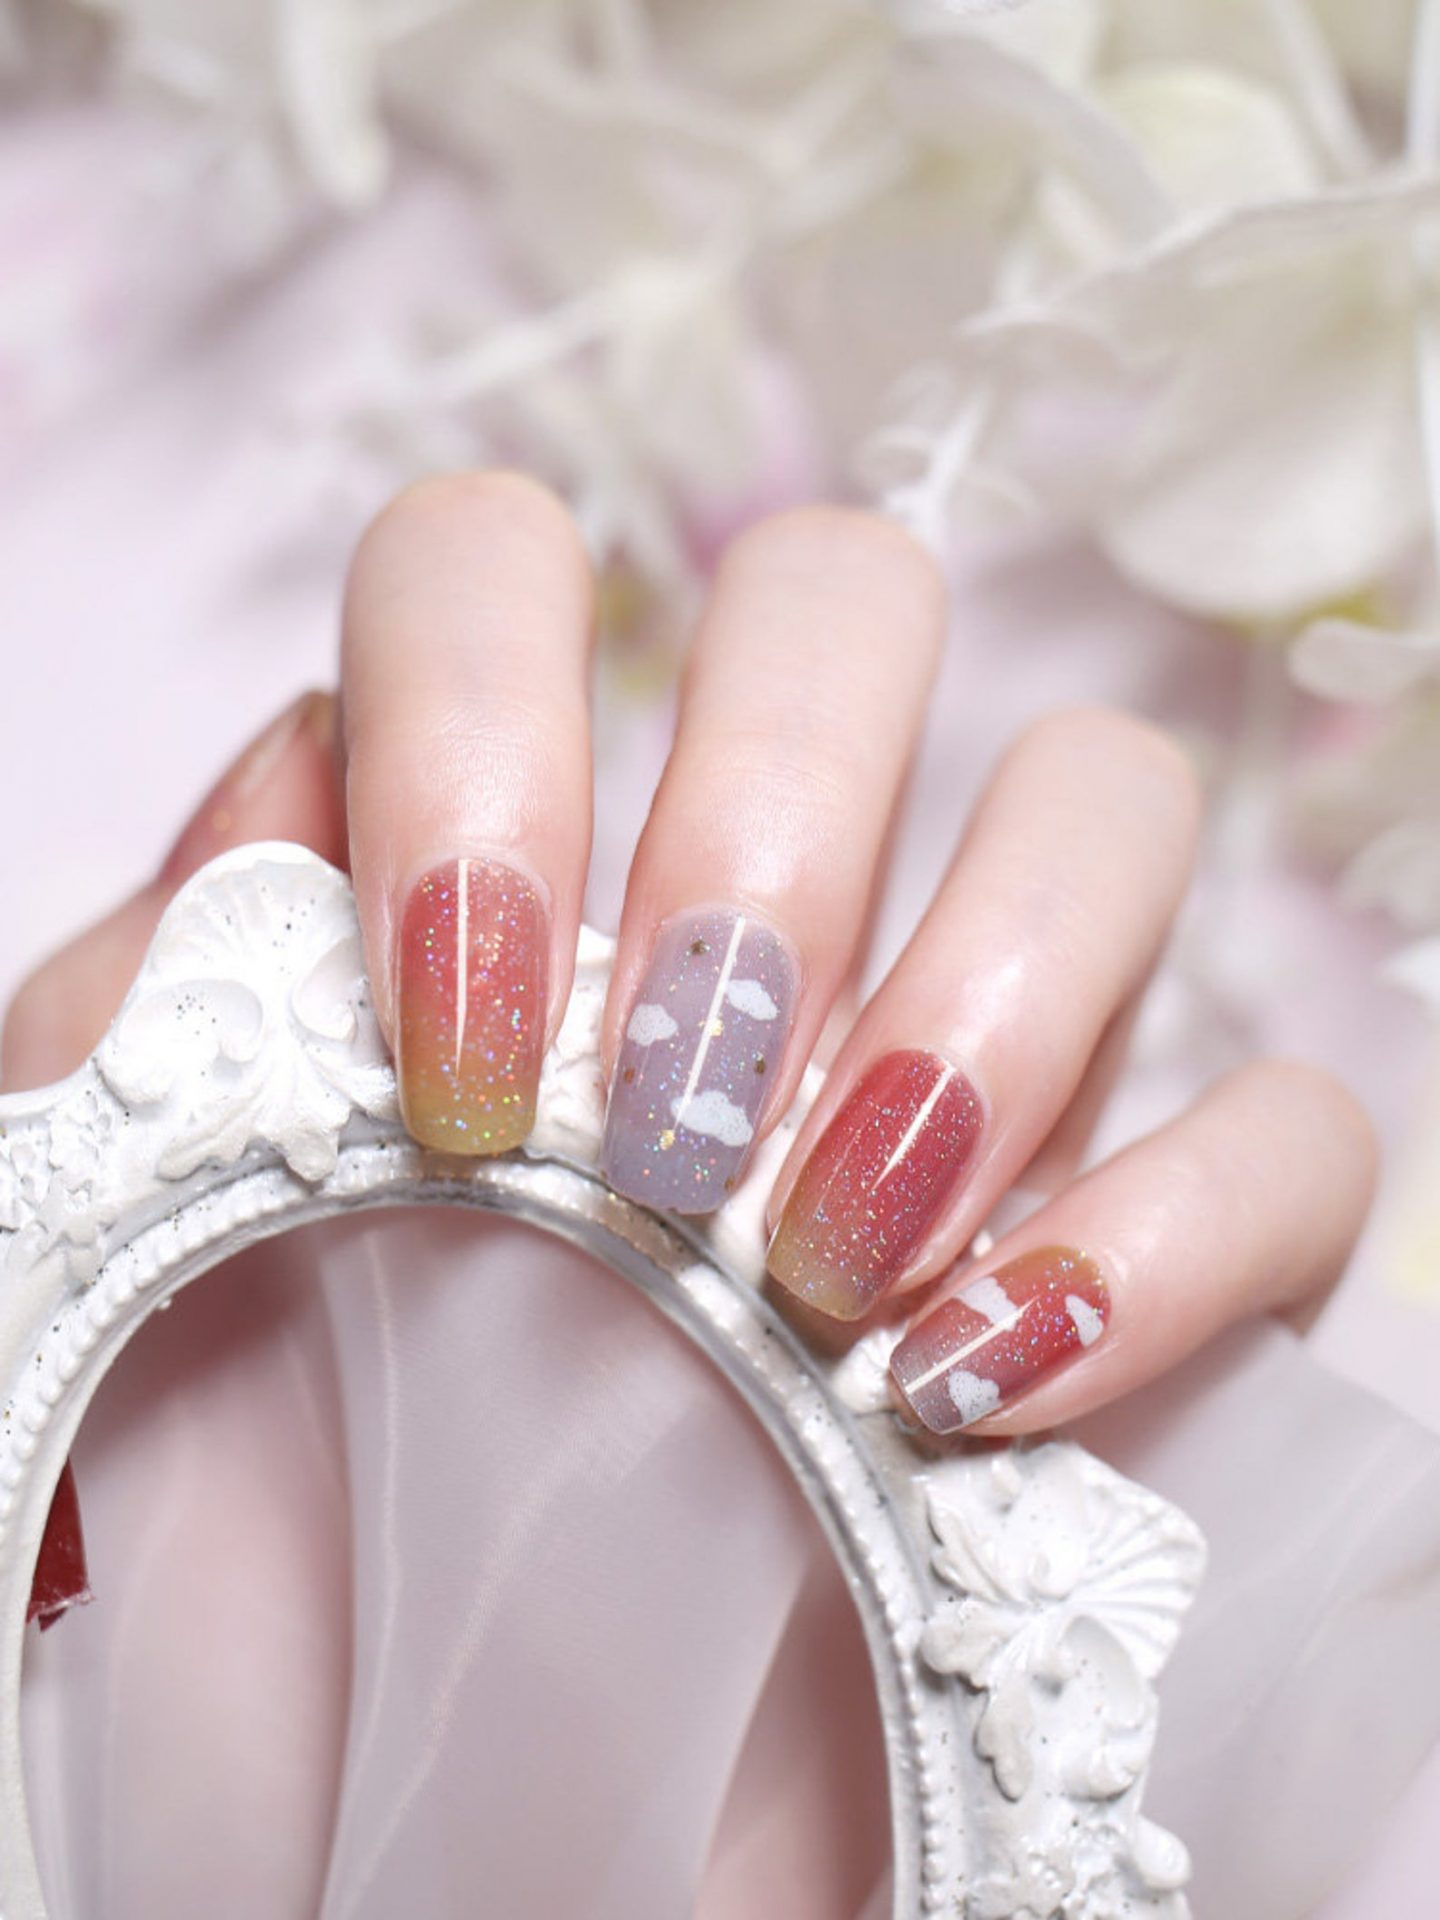 Cute jelly glitter gel nail wraps with cloud nail art